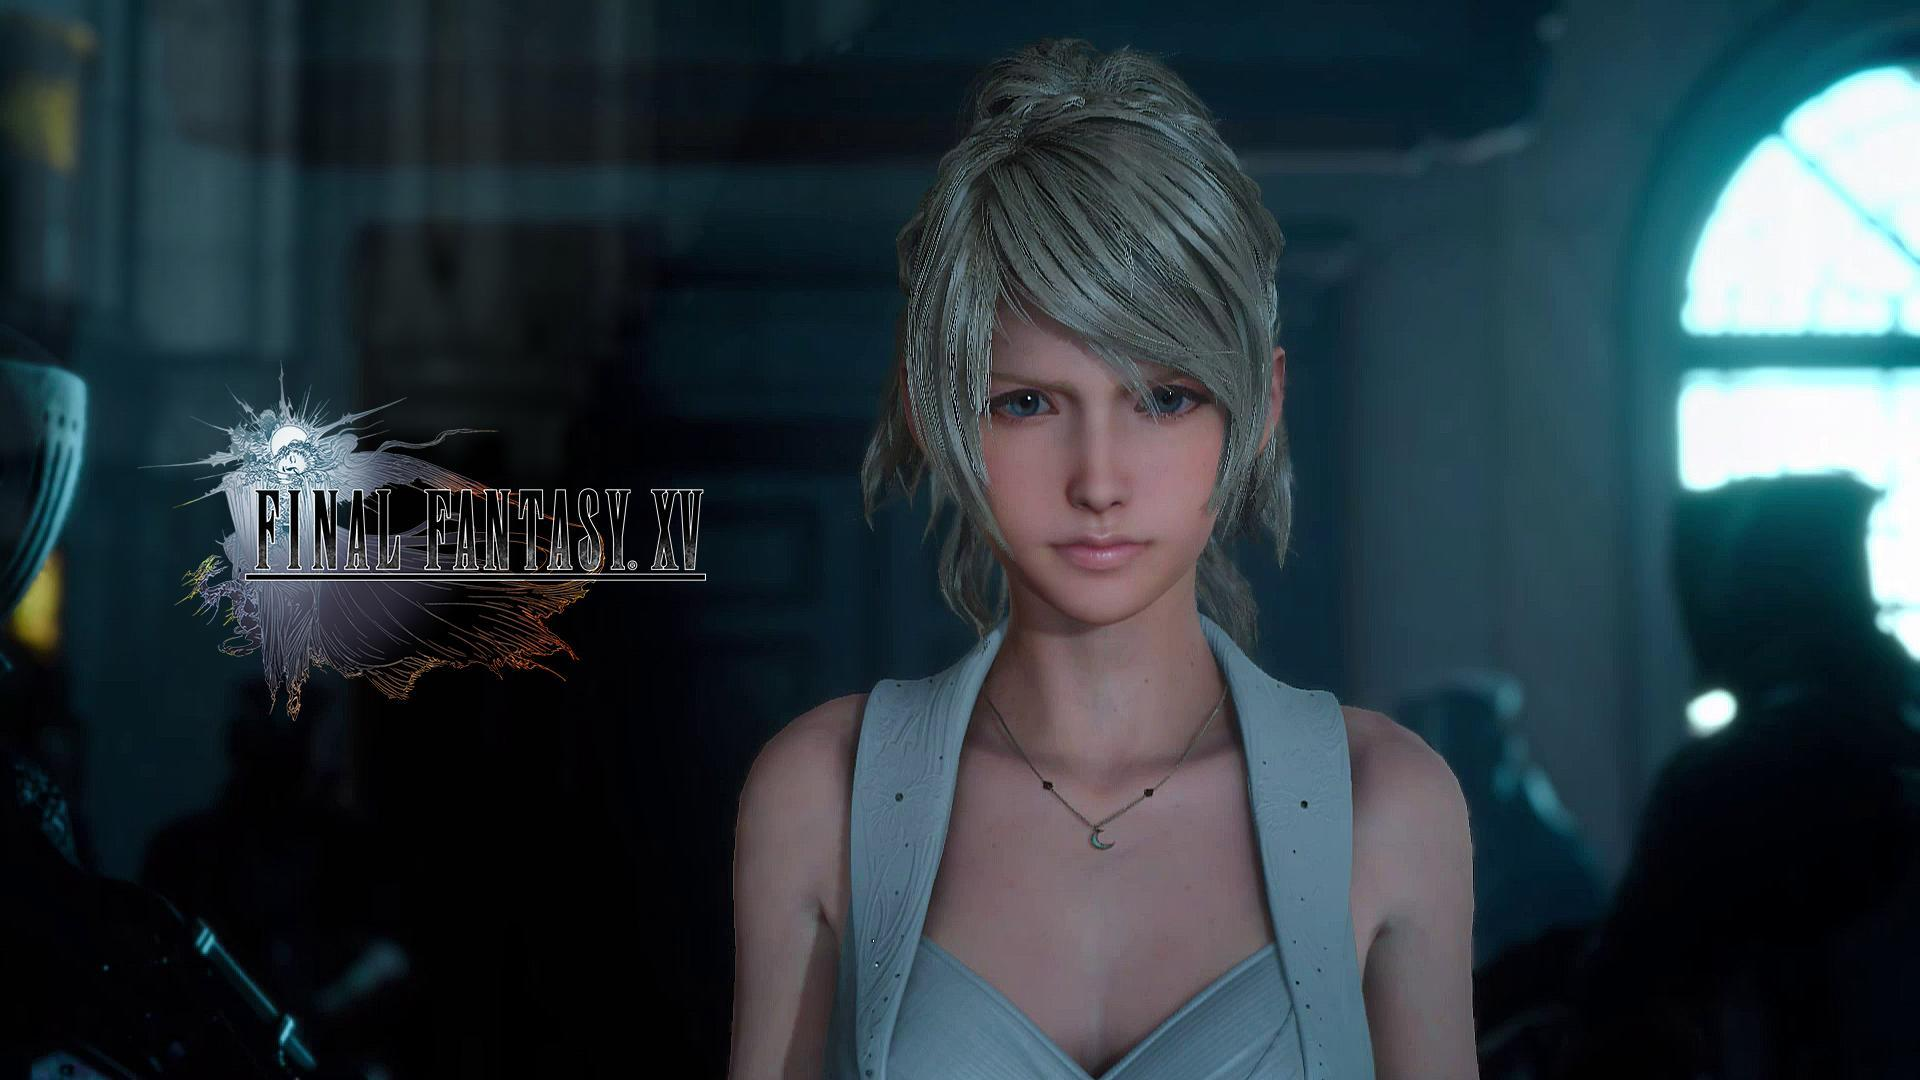 ffxv wallpapers - wallpaper cave